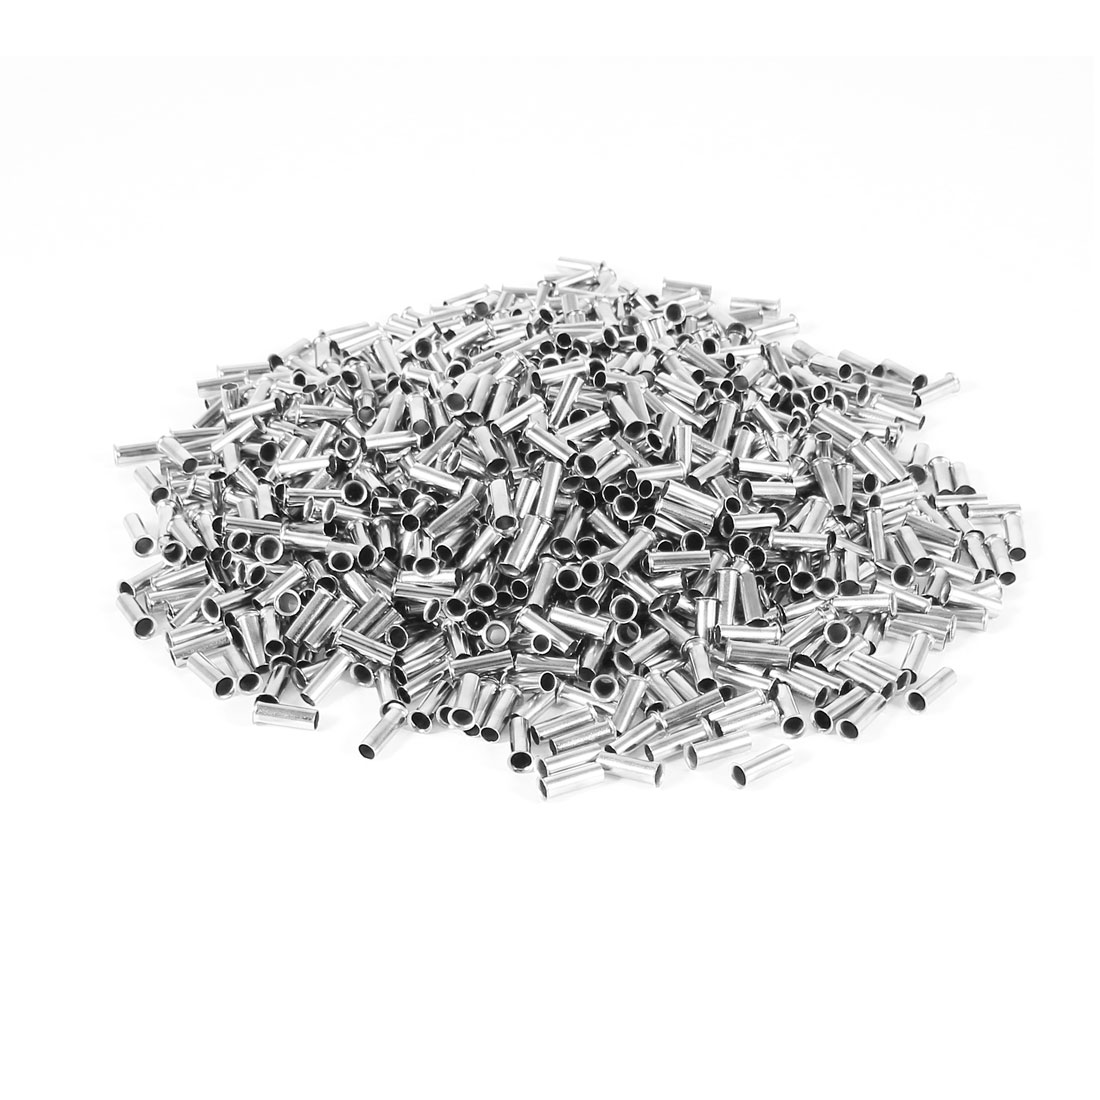 1000 Pieces Silver Tone EN2508 Copper A.W.G 14 8x3mm Non-Insulated Wire Ferrules